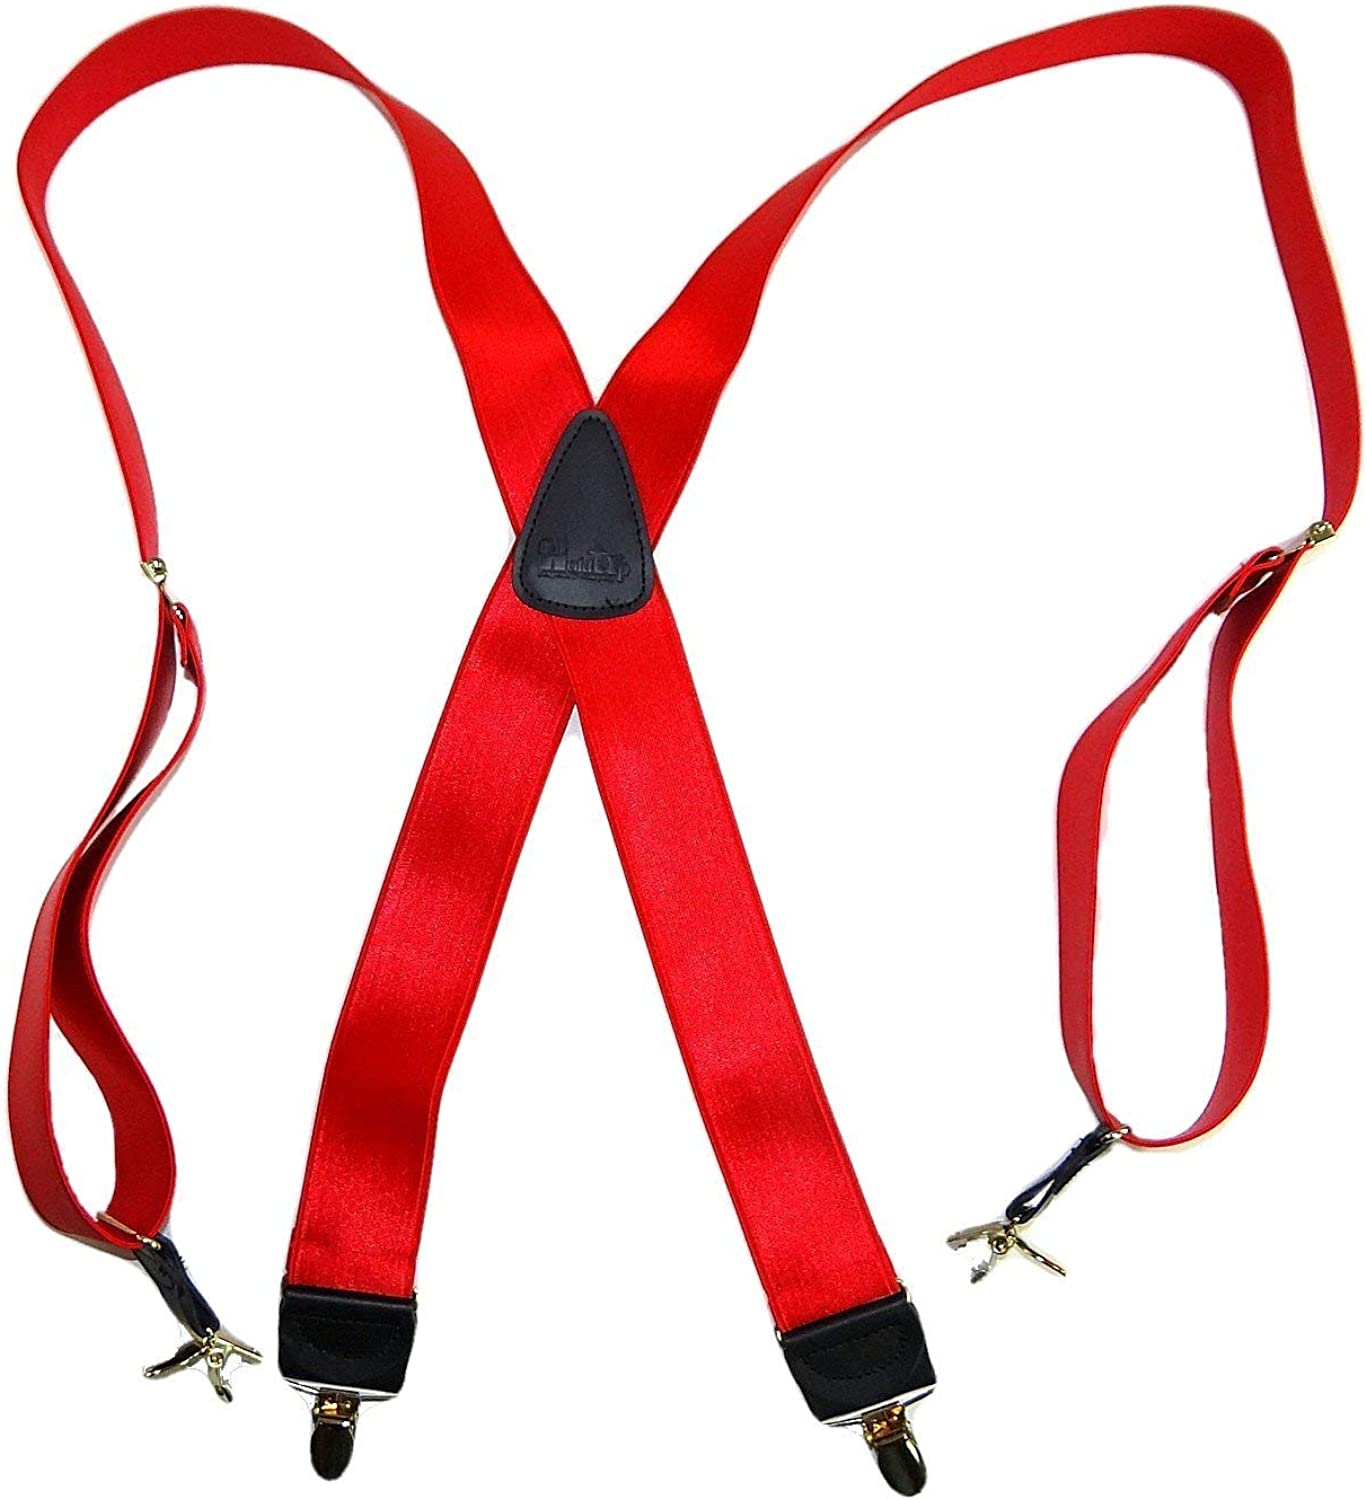 Holdup Brand XL Regal Red Satin Finish X-back Suspender with No-slip Gold-tone Clips